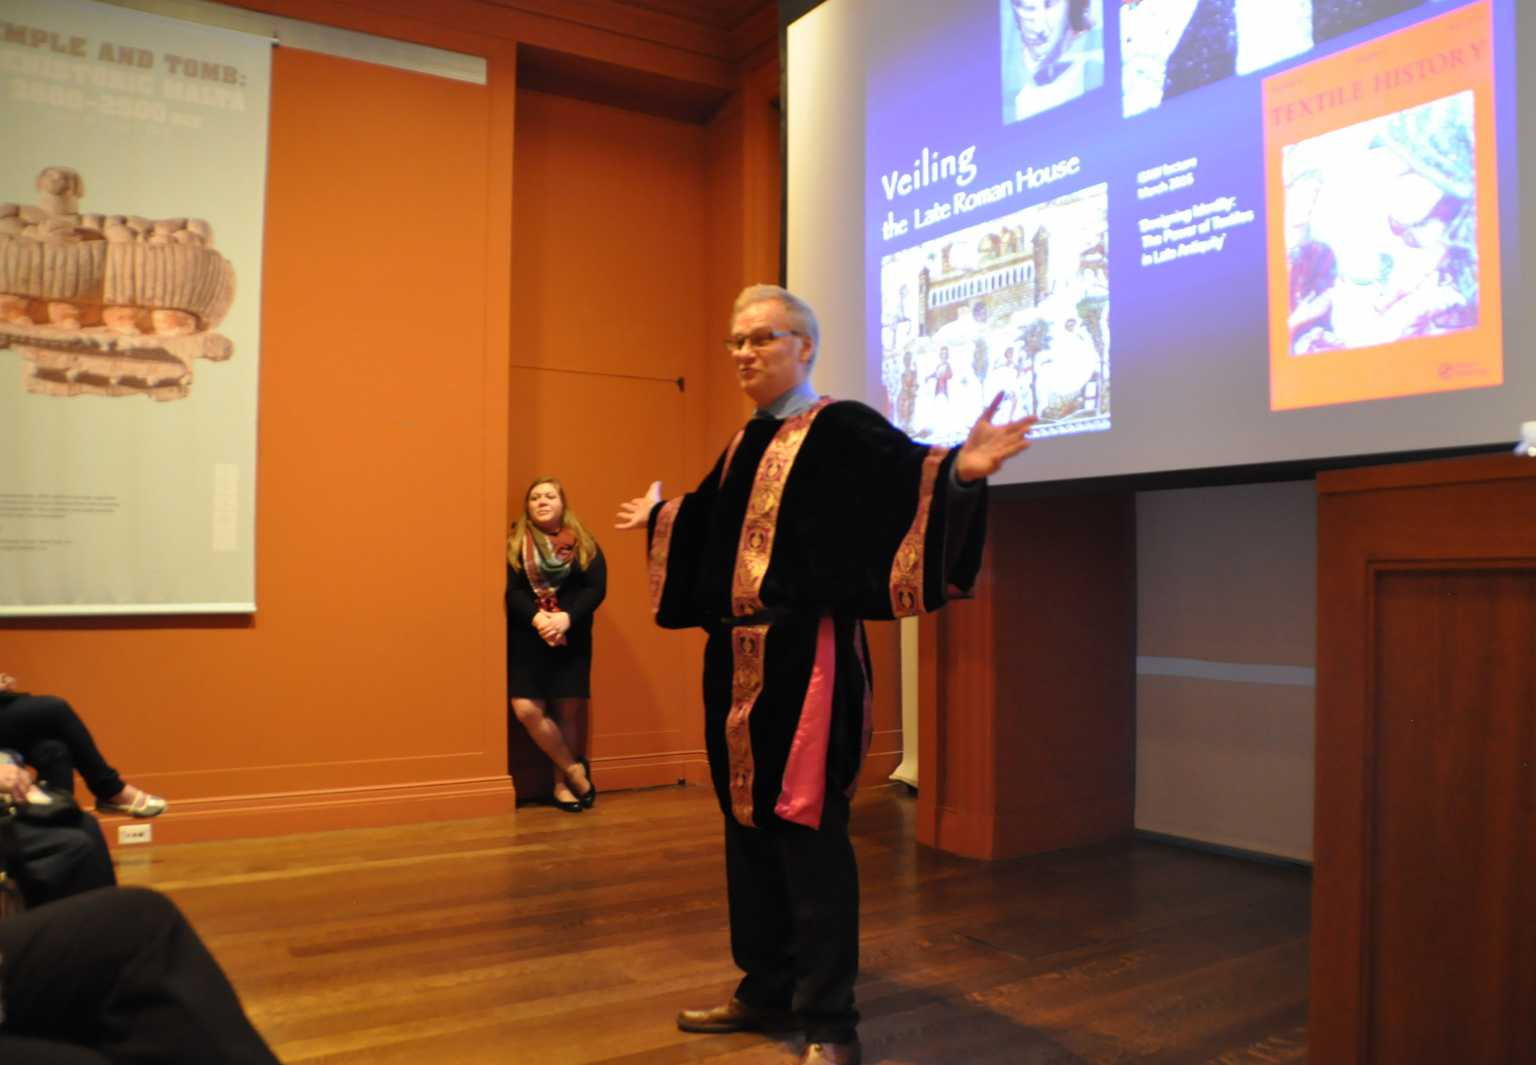 New York Presentation at Institute for Study of the Ancient World